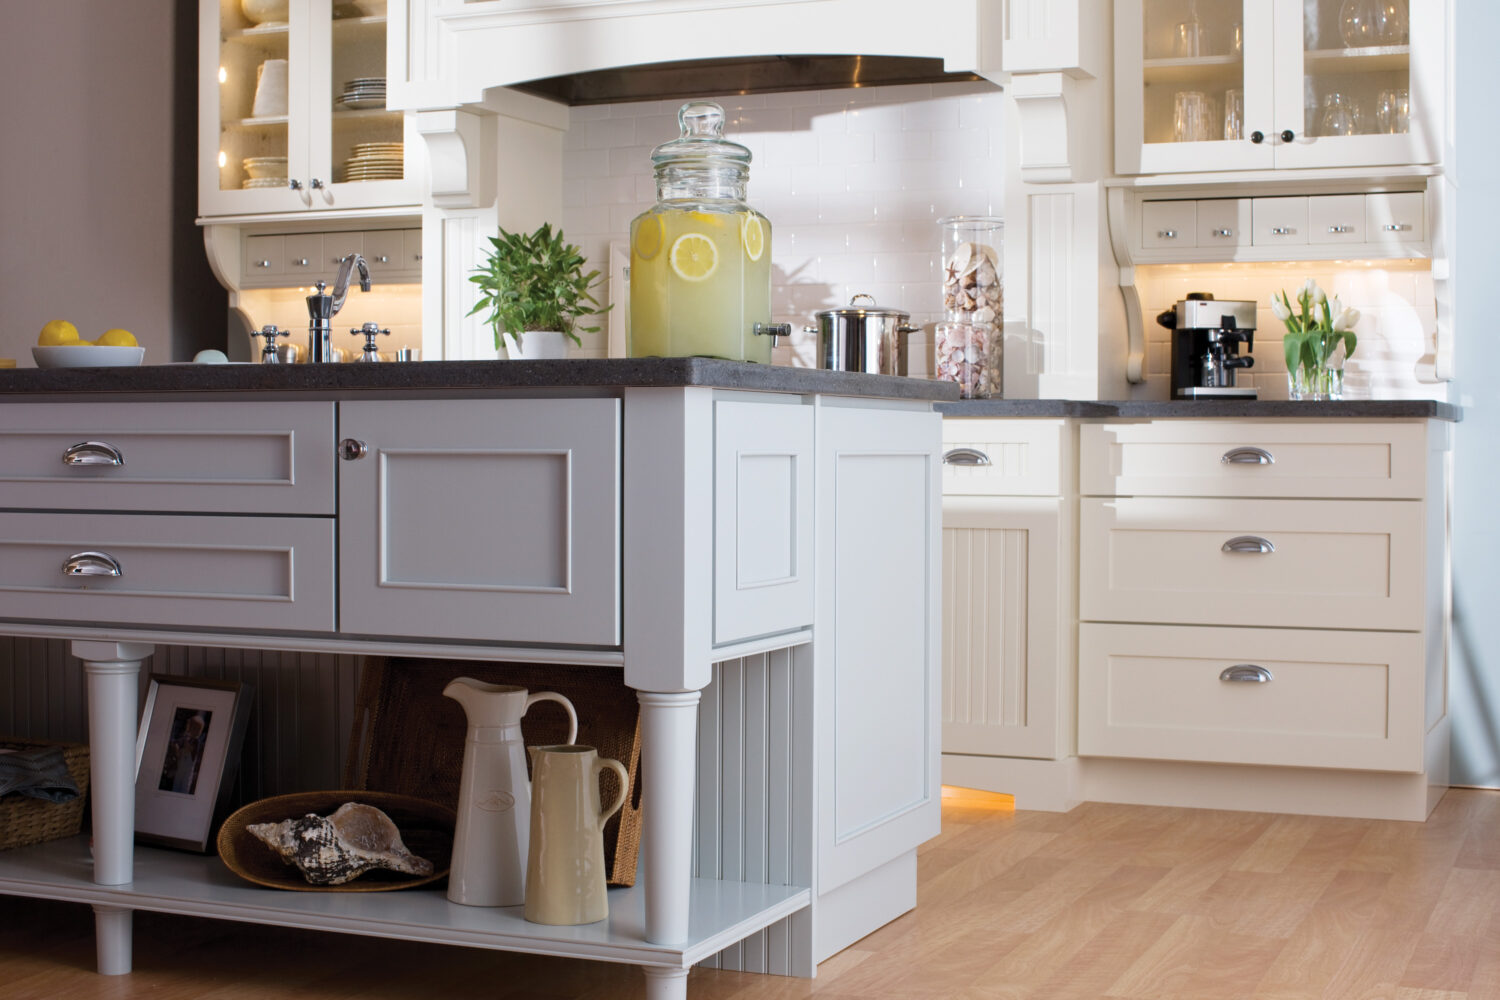 This cottage styled kitchen design mixes 3 door styles. Mixing Dura Supreme's Craftsman Panel and Craftsman Beaded Panel for the perimeter and Silverton on the kitchen island.